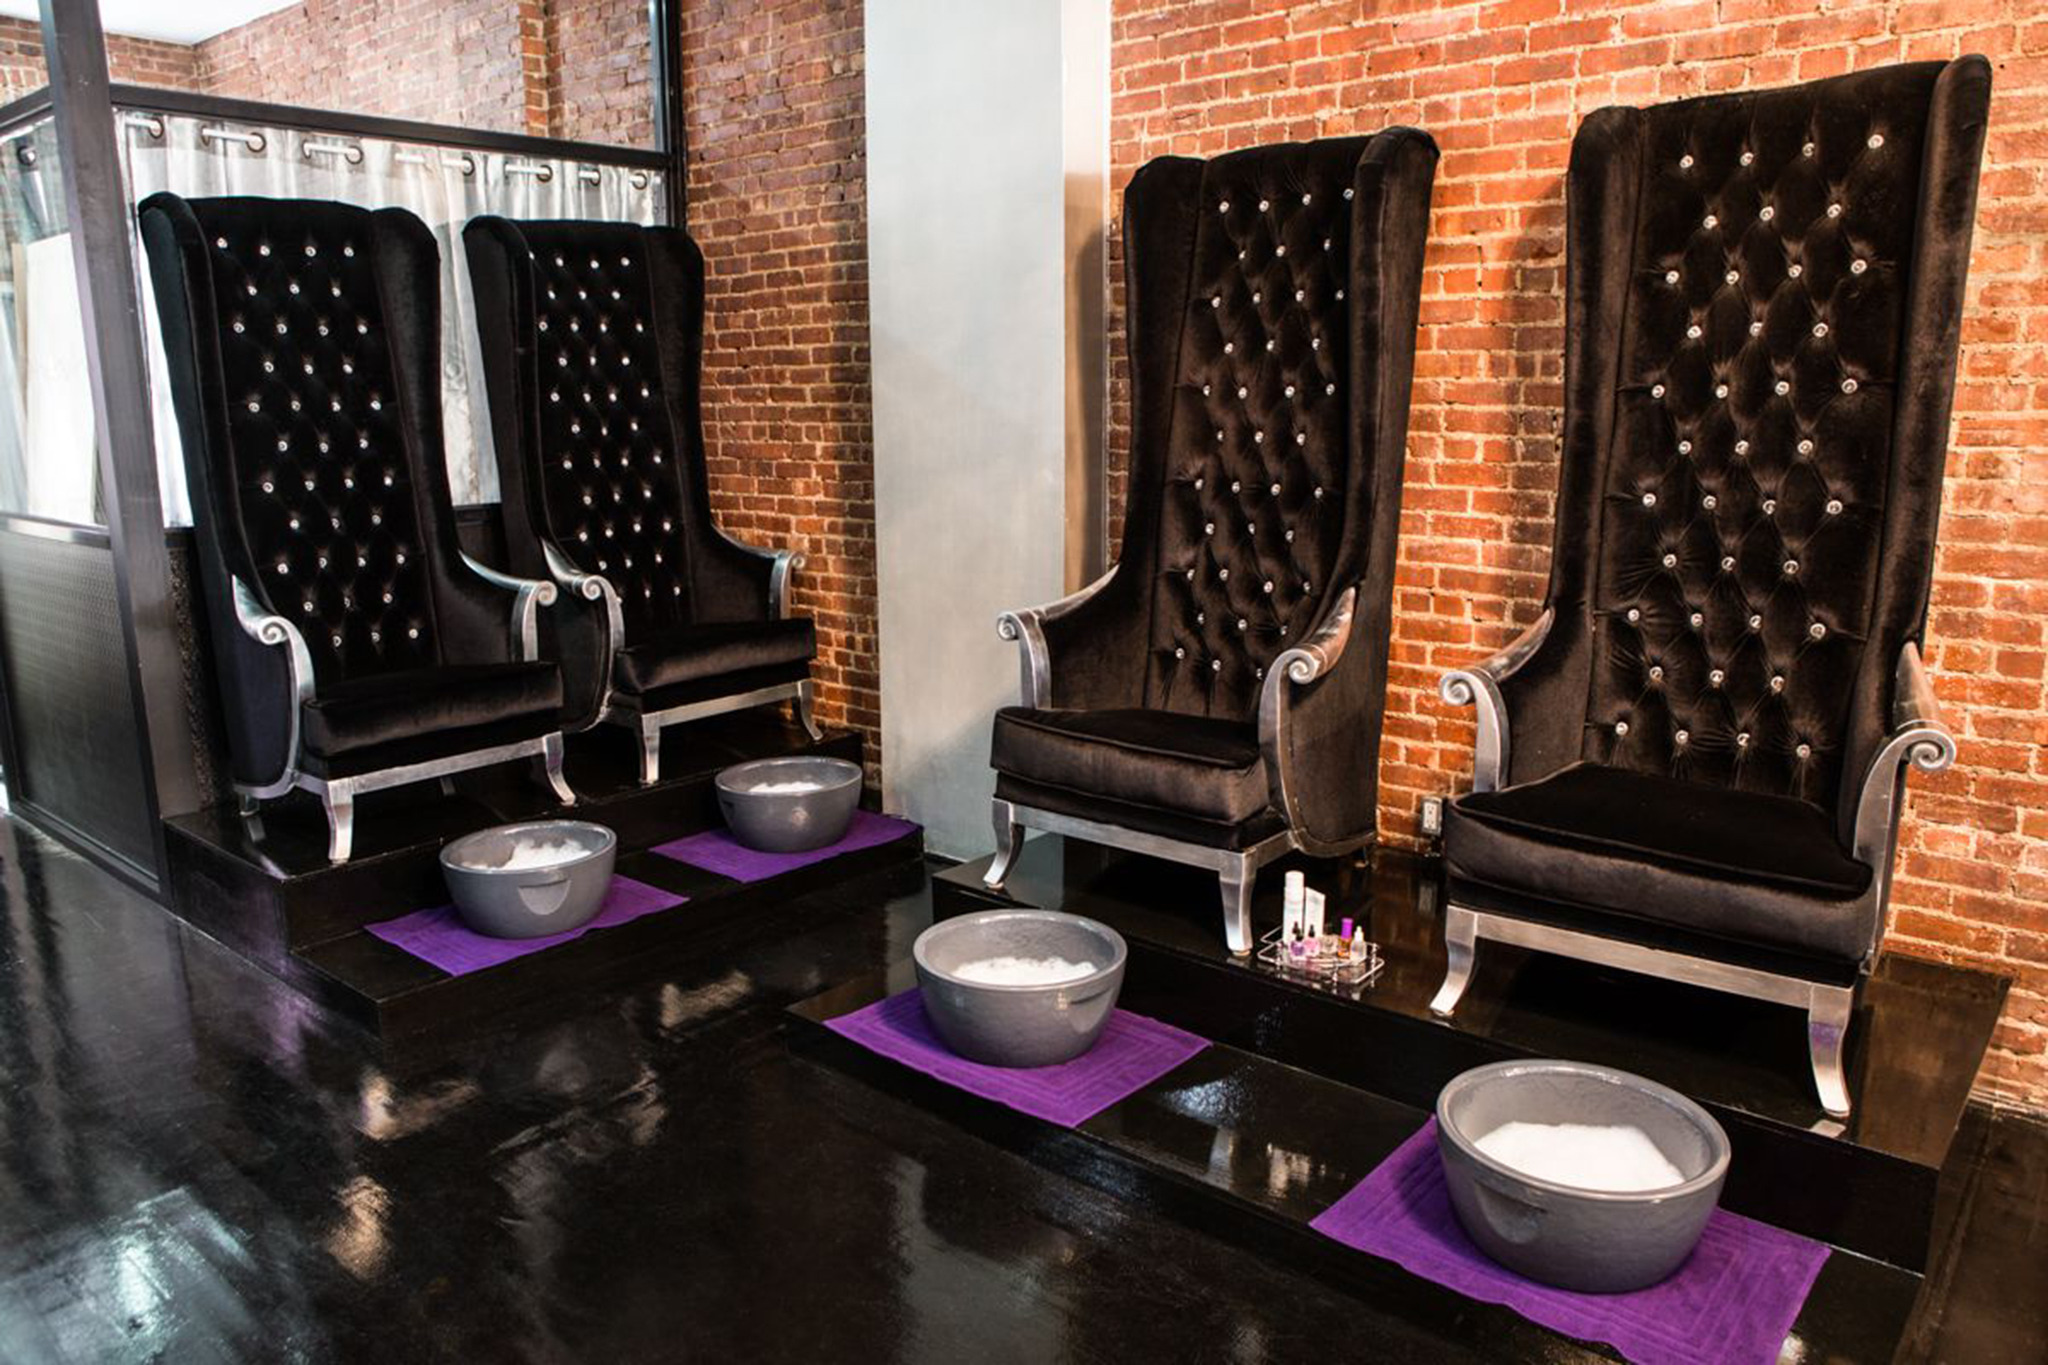 Beauty Salon Barcelona Bed Of Nails | Health And Beauty In Harlem, New York